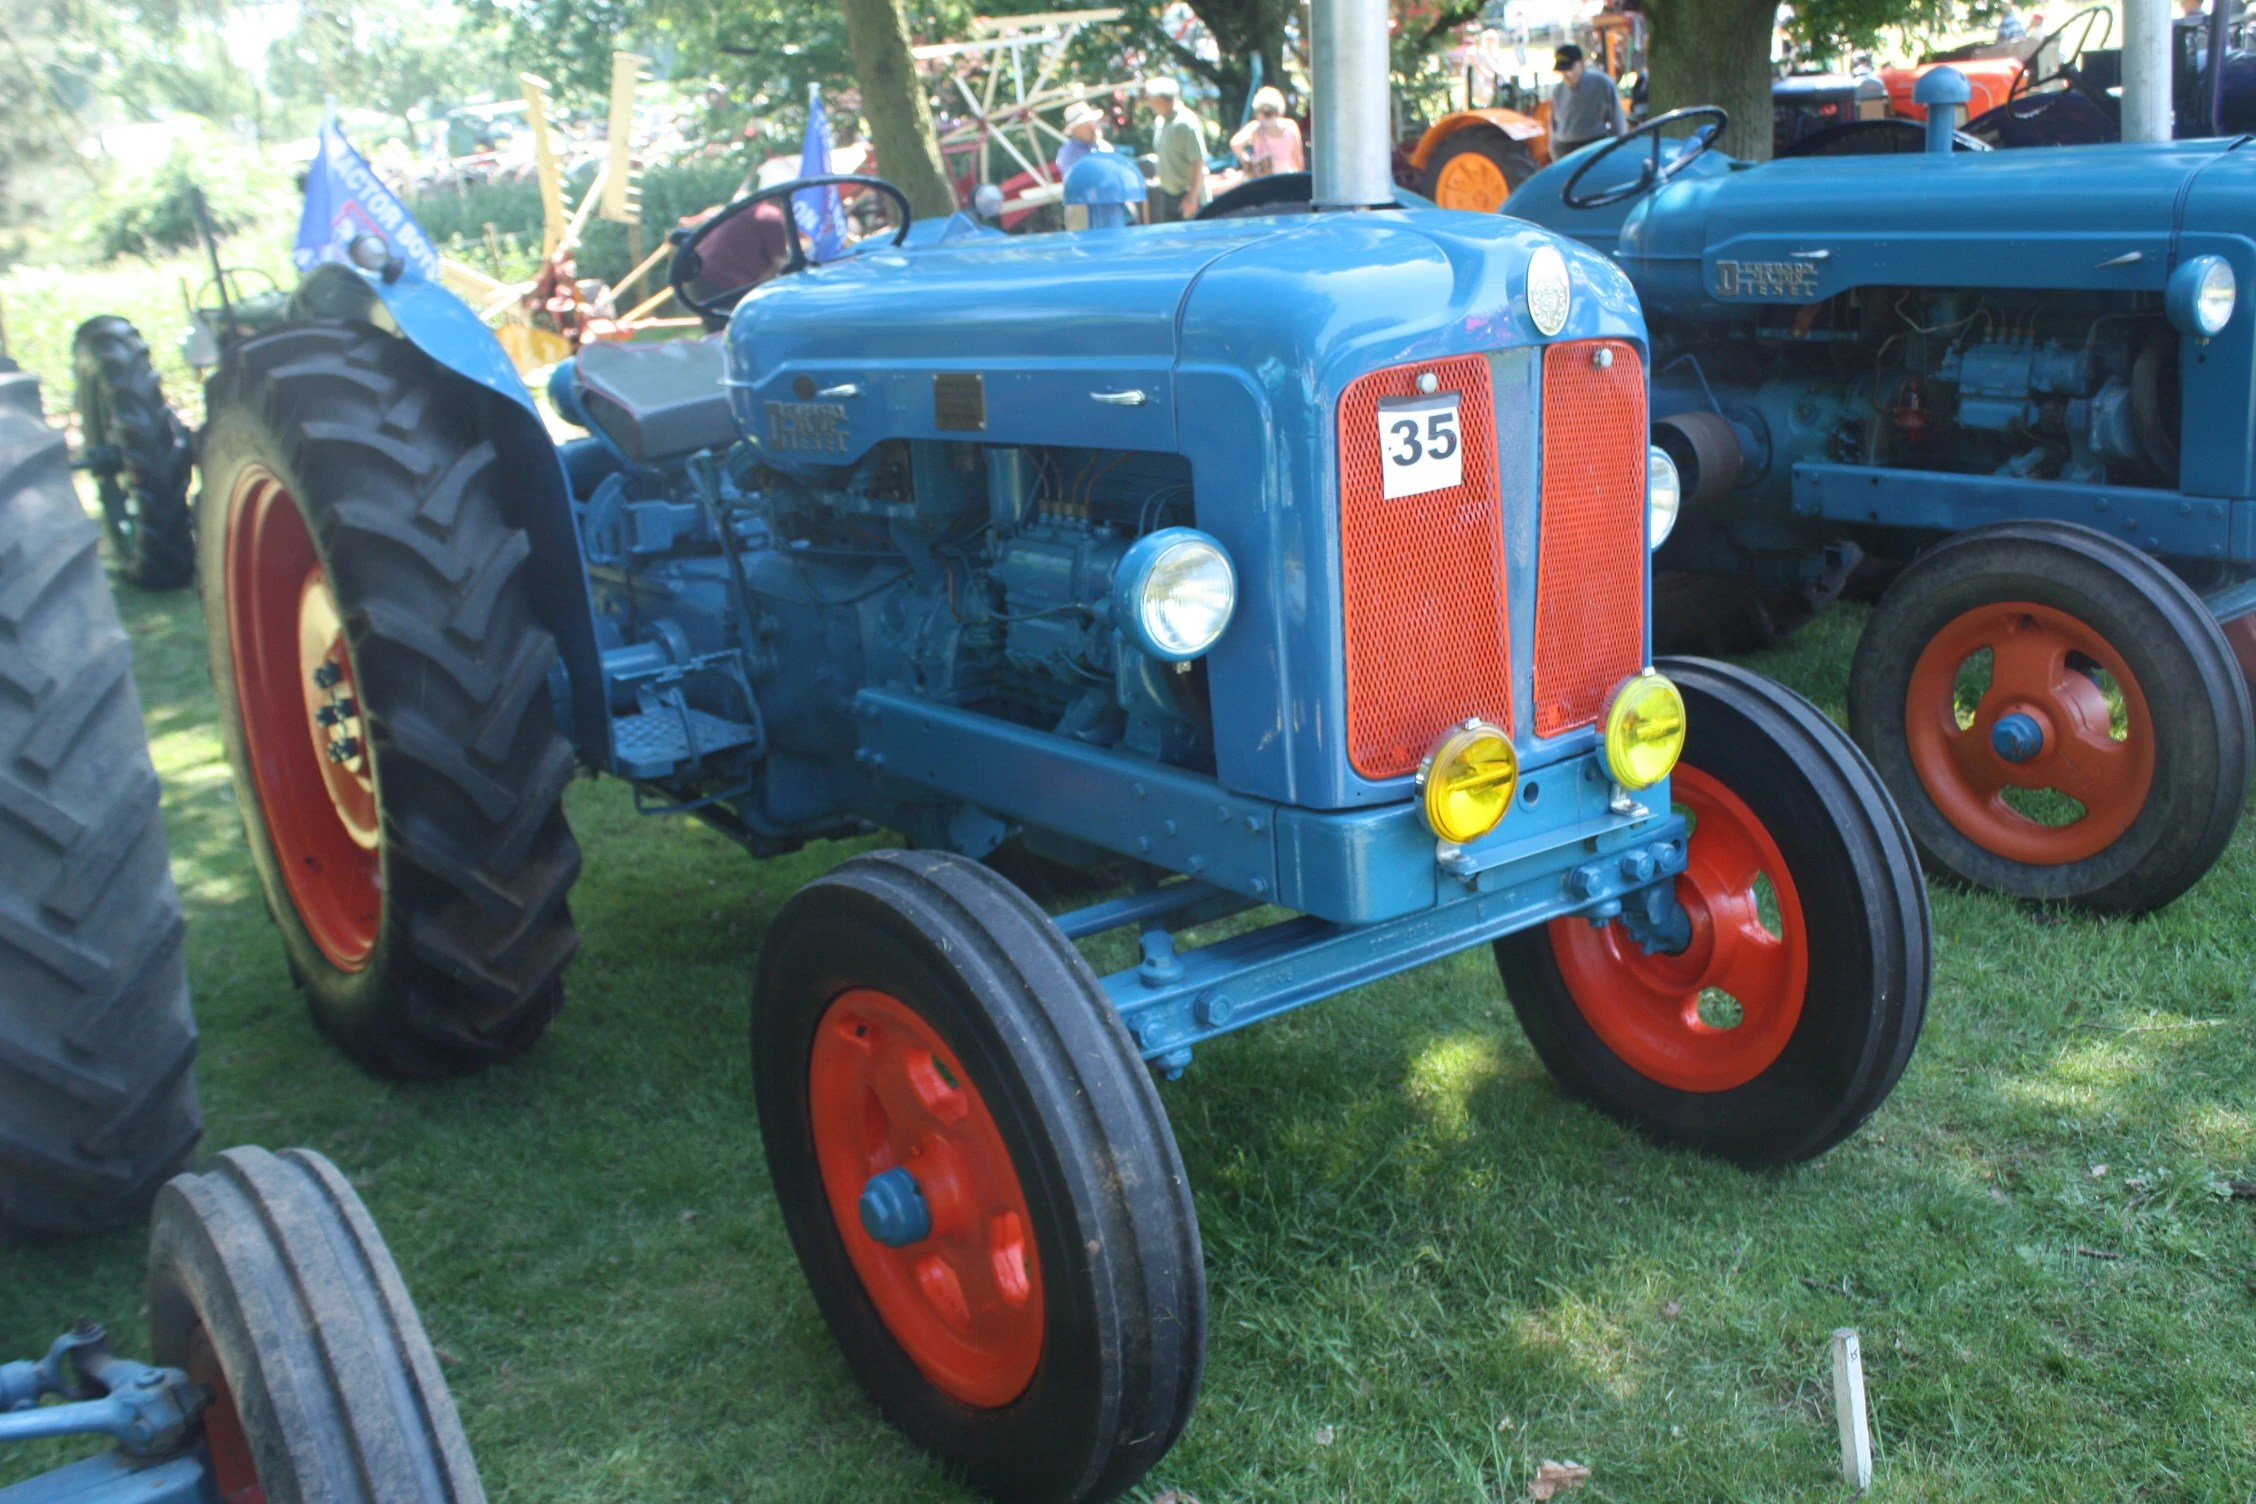 fordson e1a major tractor construction plant wiki fandom powered by wikia [ 2256 x 1504 Pixel ]